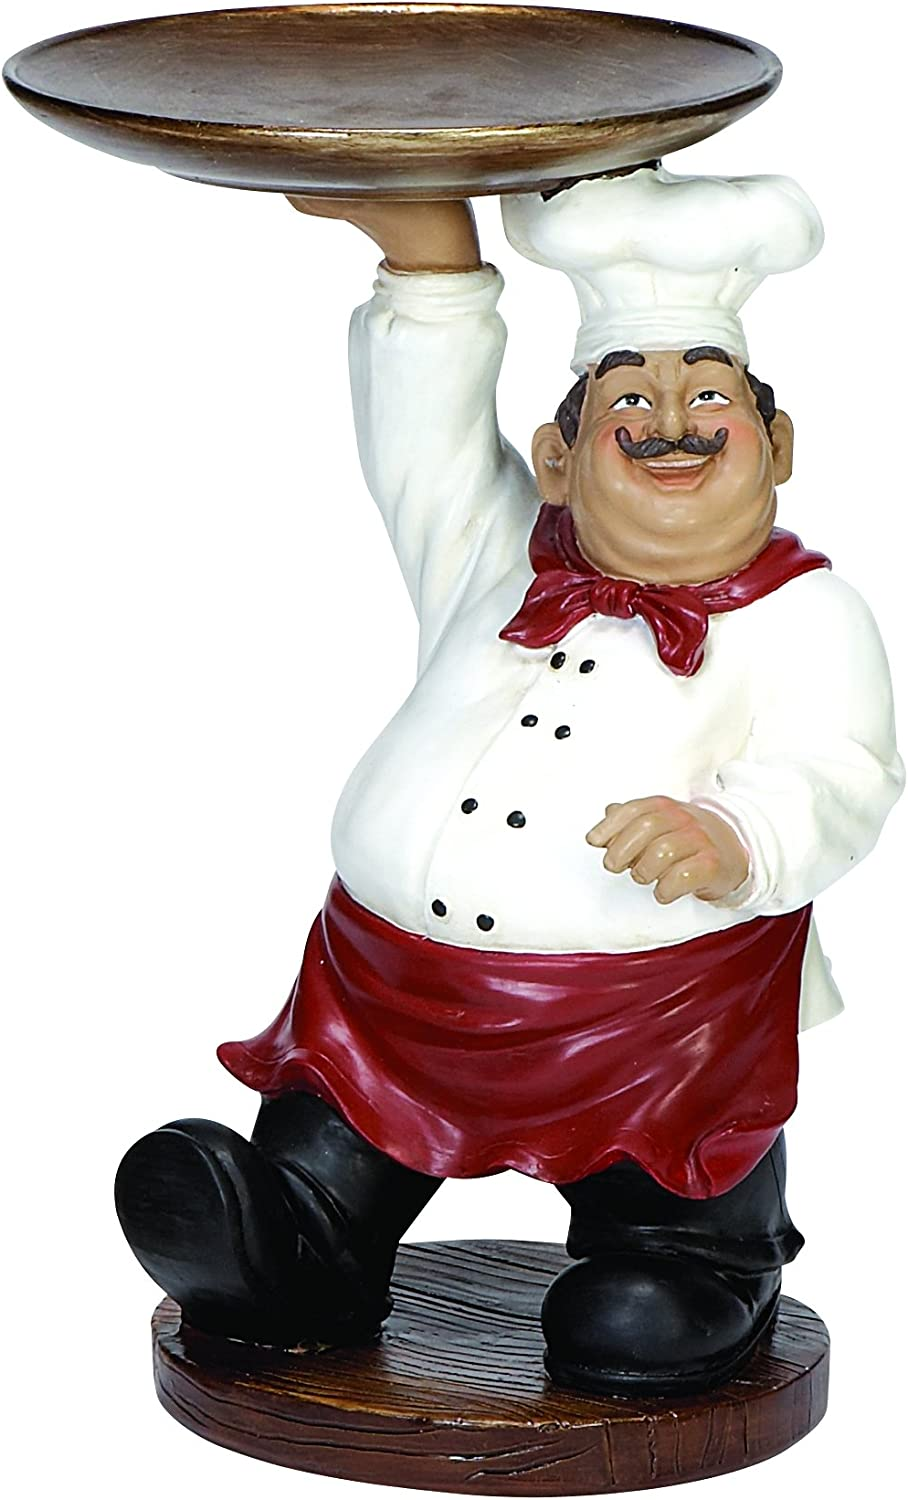 Home Decor Figurine Gift Kitchen Fat Italian Chef Holding Welcome Sign 8 Tall Furniture Diy Rentwork Eu